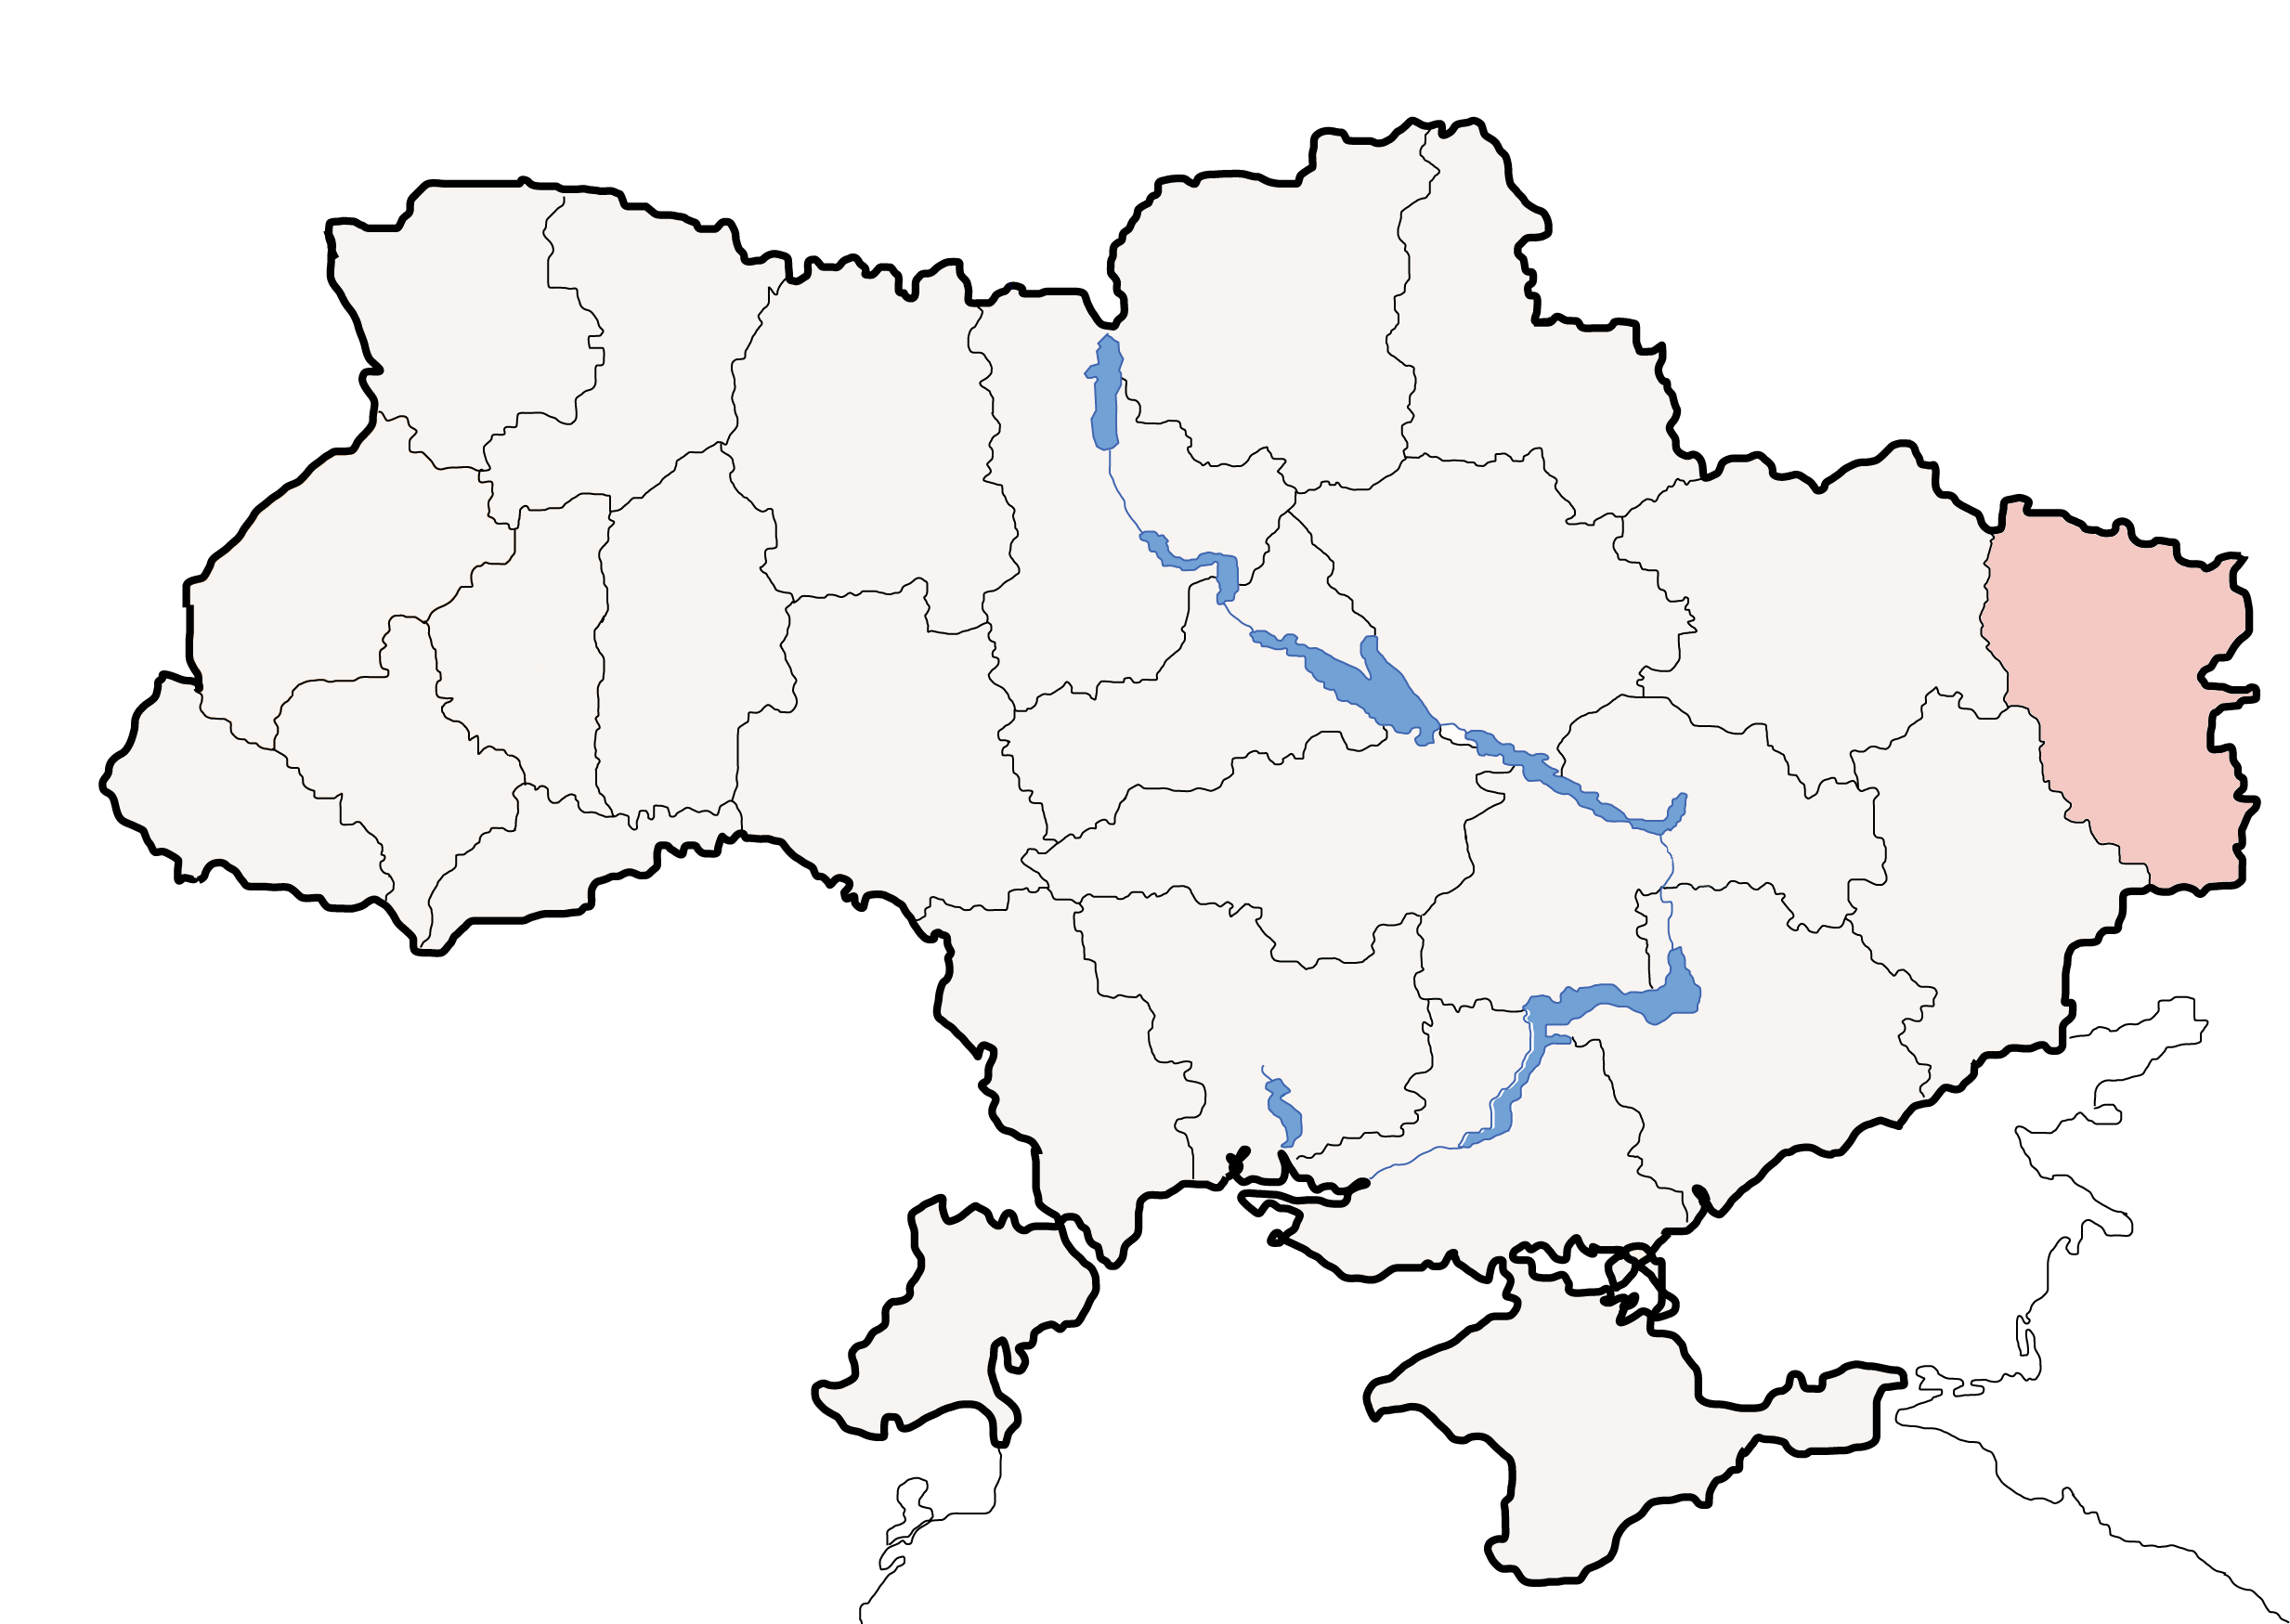 FileMap of Ukraine political simple Oblast Luhanskpng